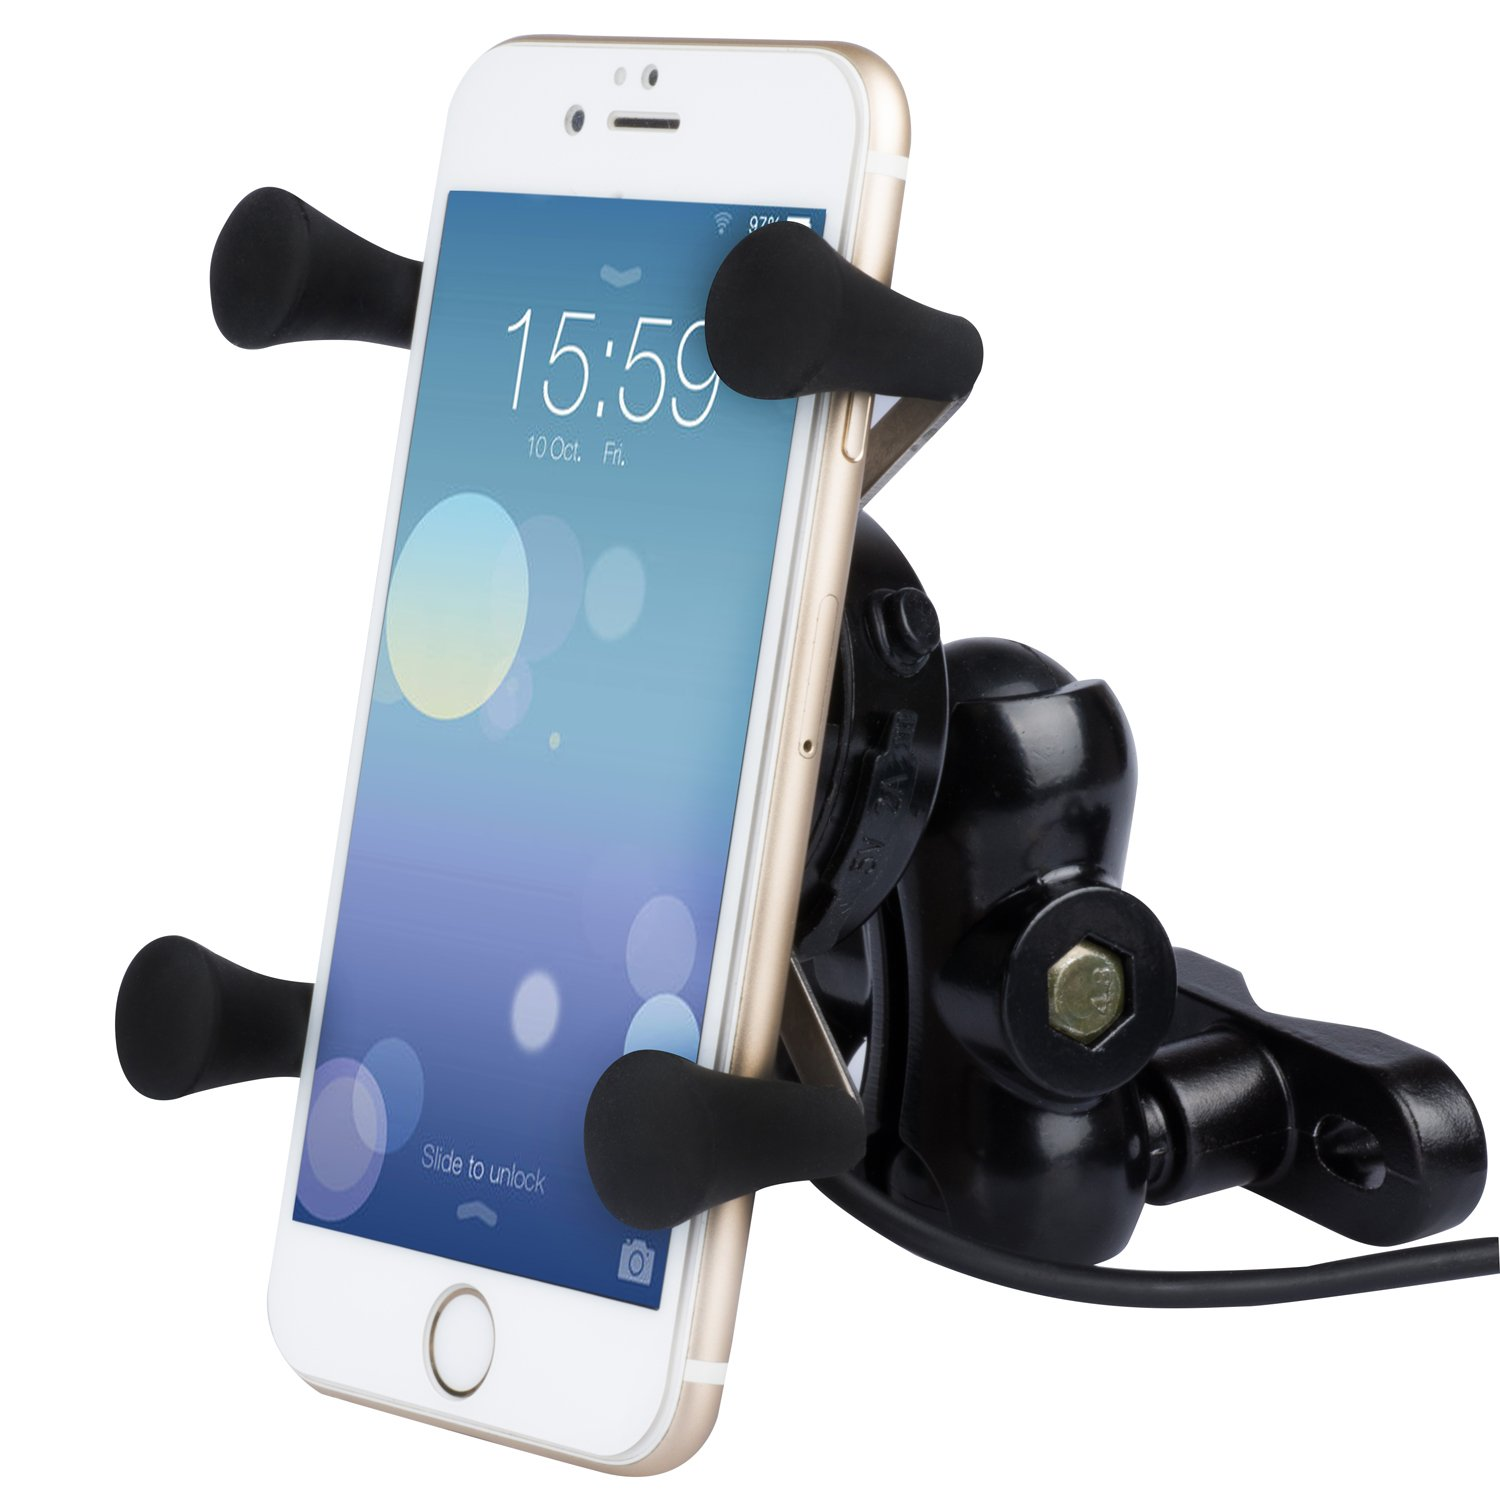 BlueFire Universal Bike Handlebar Mount Holder Adjustable Motorcycle Phone Mount Handlebar Cell Phone Holder with for Bicycle Motorbike Scooter ATV RV